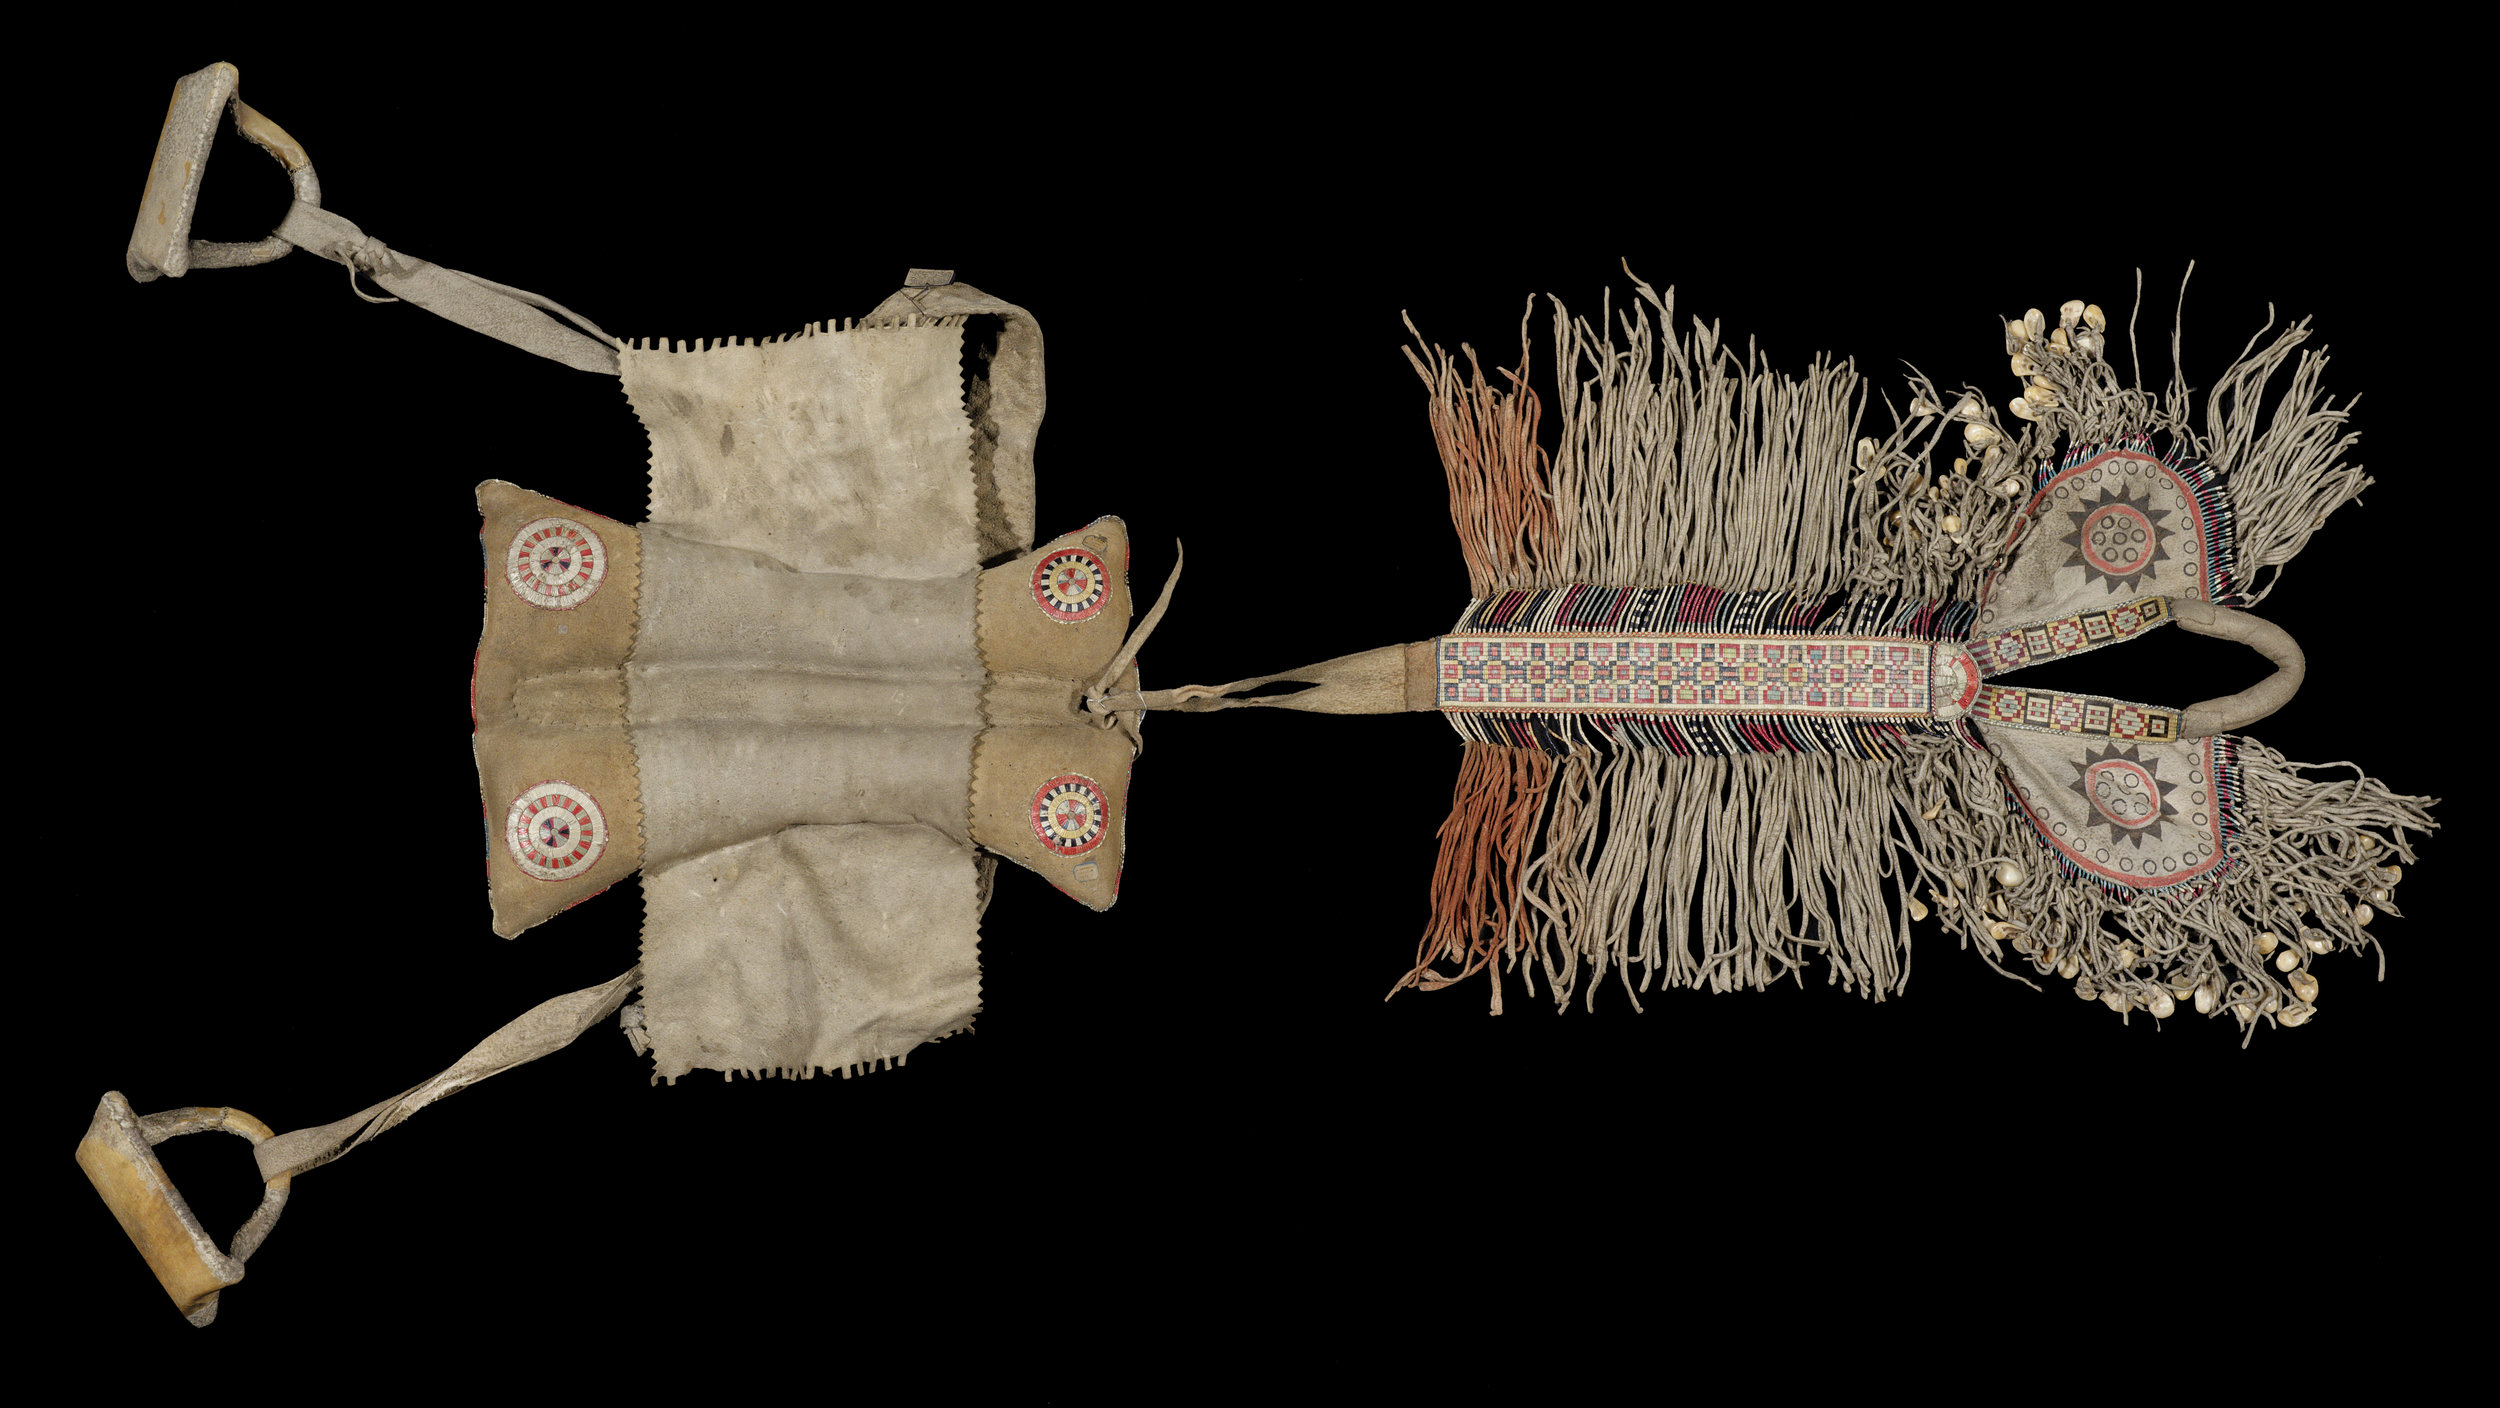 Padded saddle, Plains, North America. Pitt Rivers Museum, cat. # 1884.51.14 . Image courtesy of the  Pitt Rivers Museum .